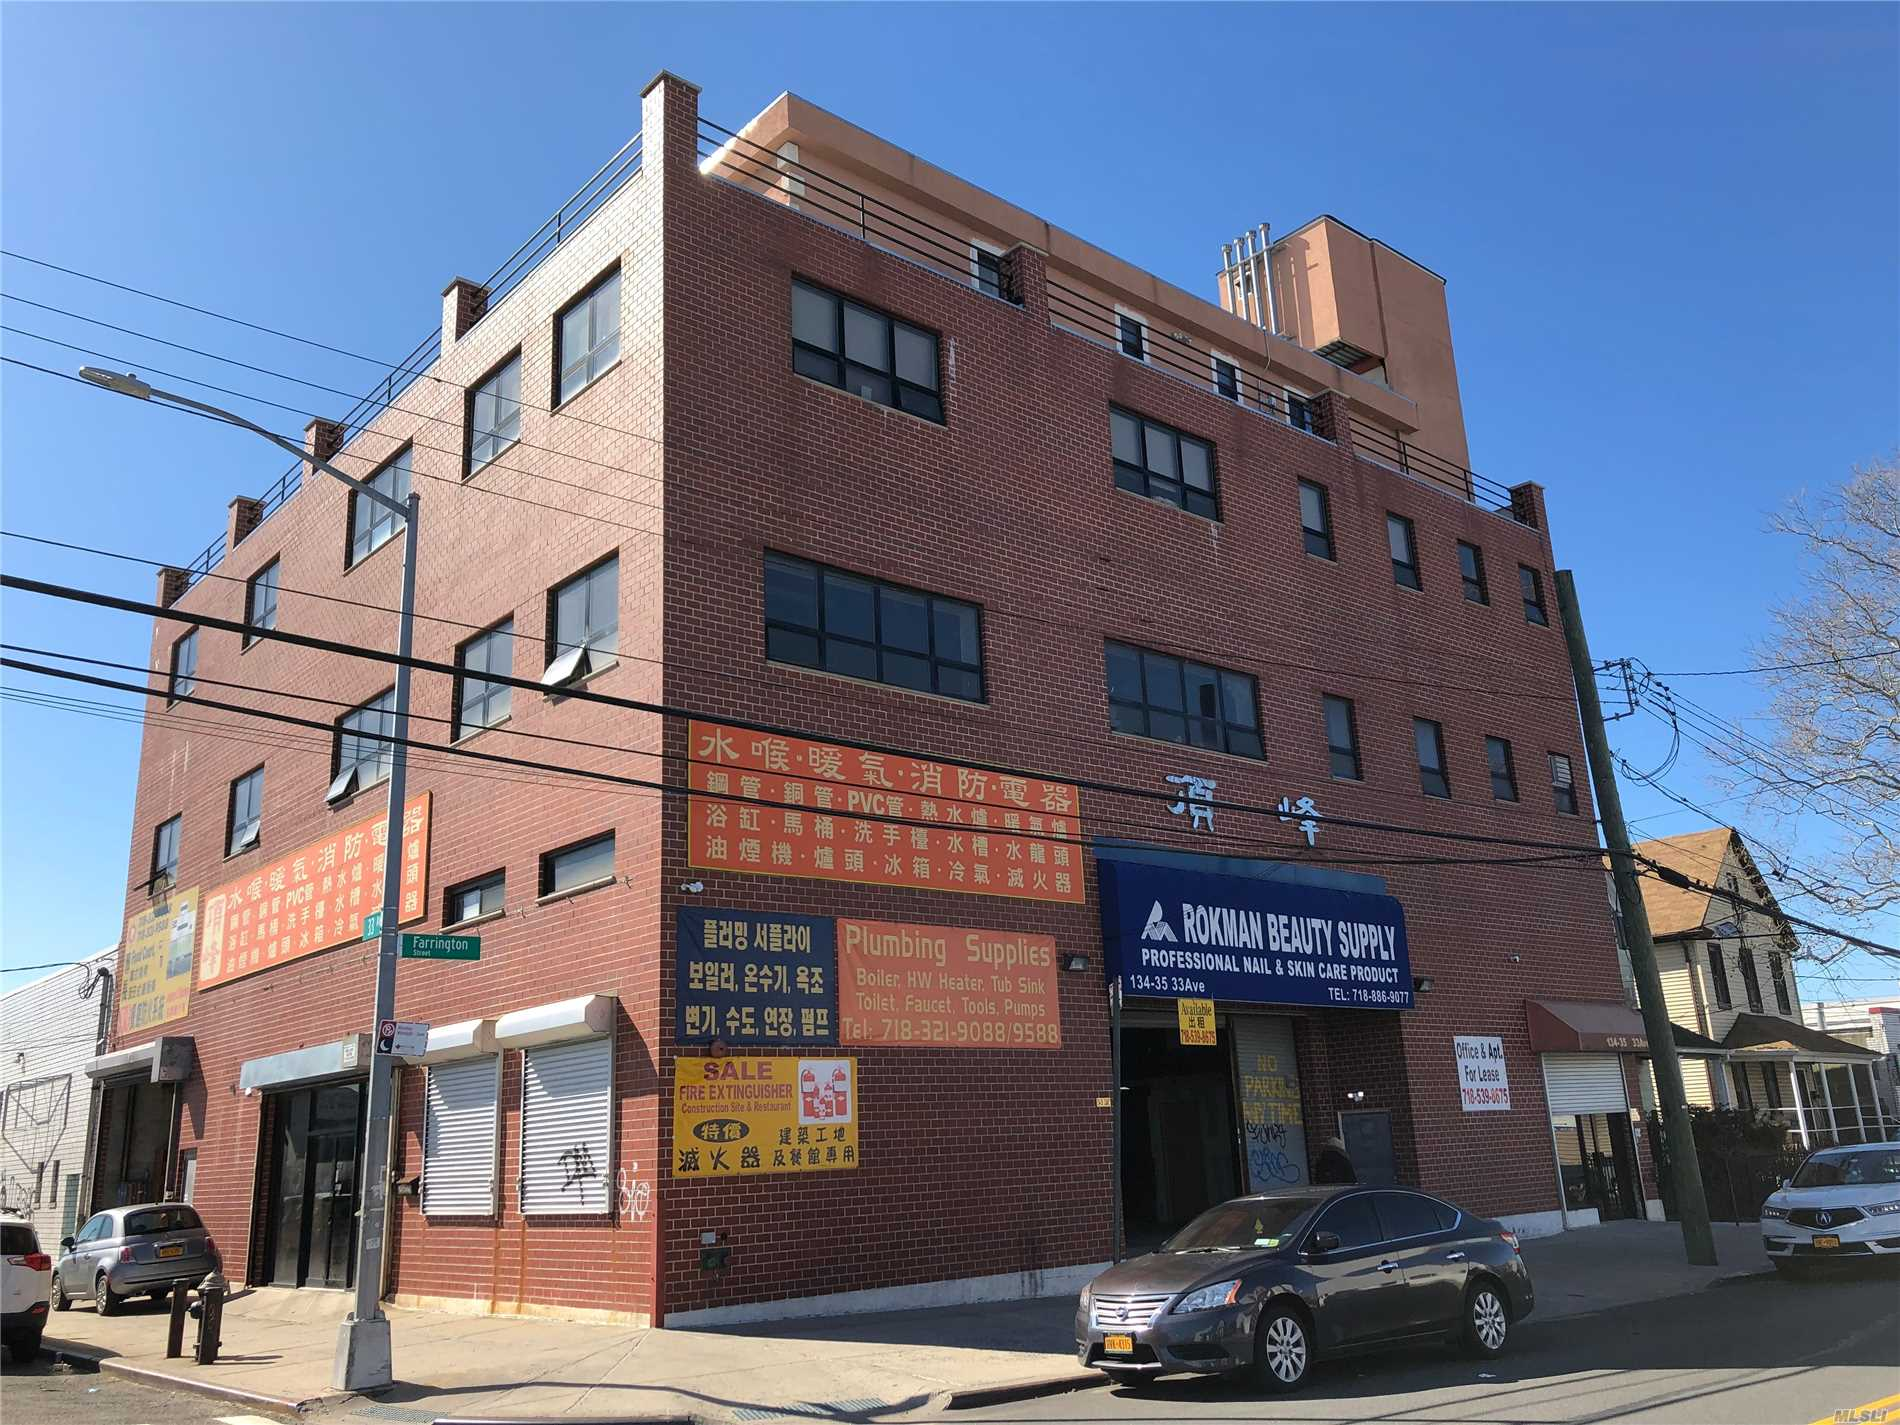 Unit 2A: 2142 sq ft , Warehouse/Showroom/Office Space: Close to downtown Flushing and highways I-678 and Whitestone Expressway.